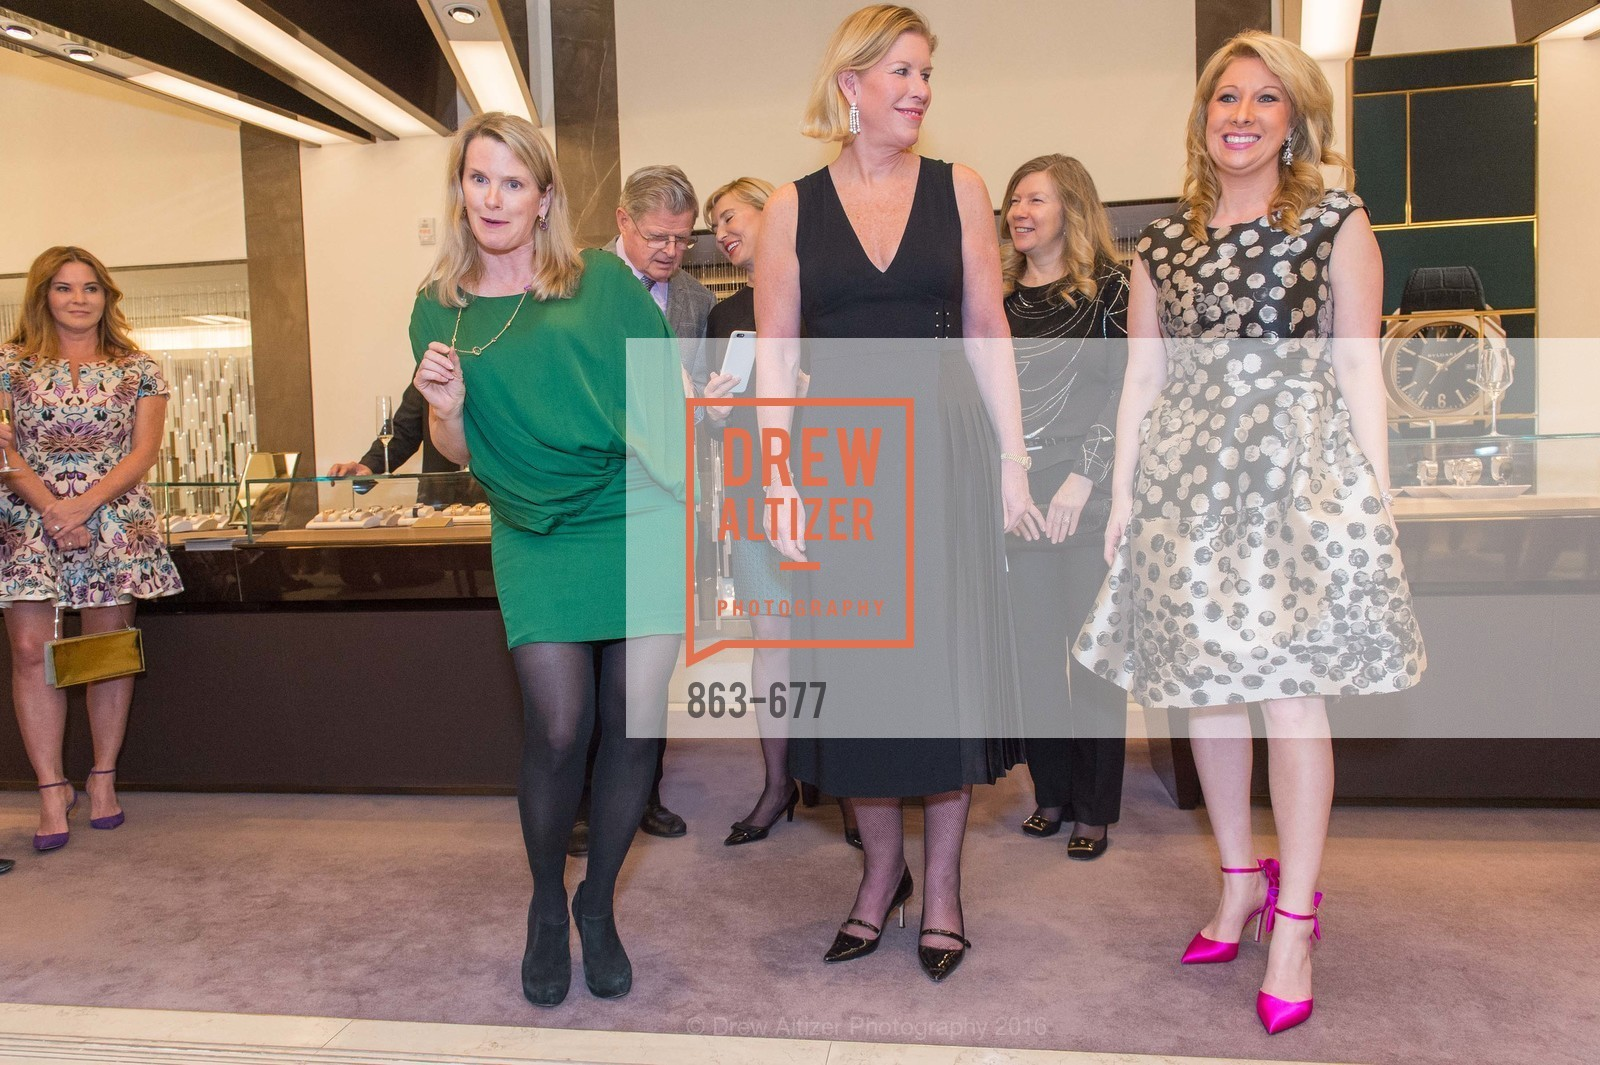 Marie Hurabiell, Jennifer Brandenburg, Jennifer Mancuso, Bulgari Hosts The 2016 Ballet Gala Patrons Party, Bulgari. 200 Stockton st, January 7th, 2016,Drew Altizer, Drew Altizer Photography, full-service agency, private events, San Francisco photographer, photographer california